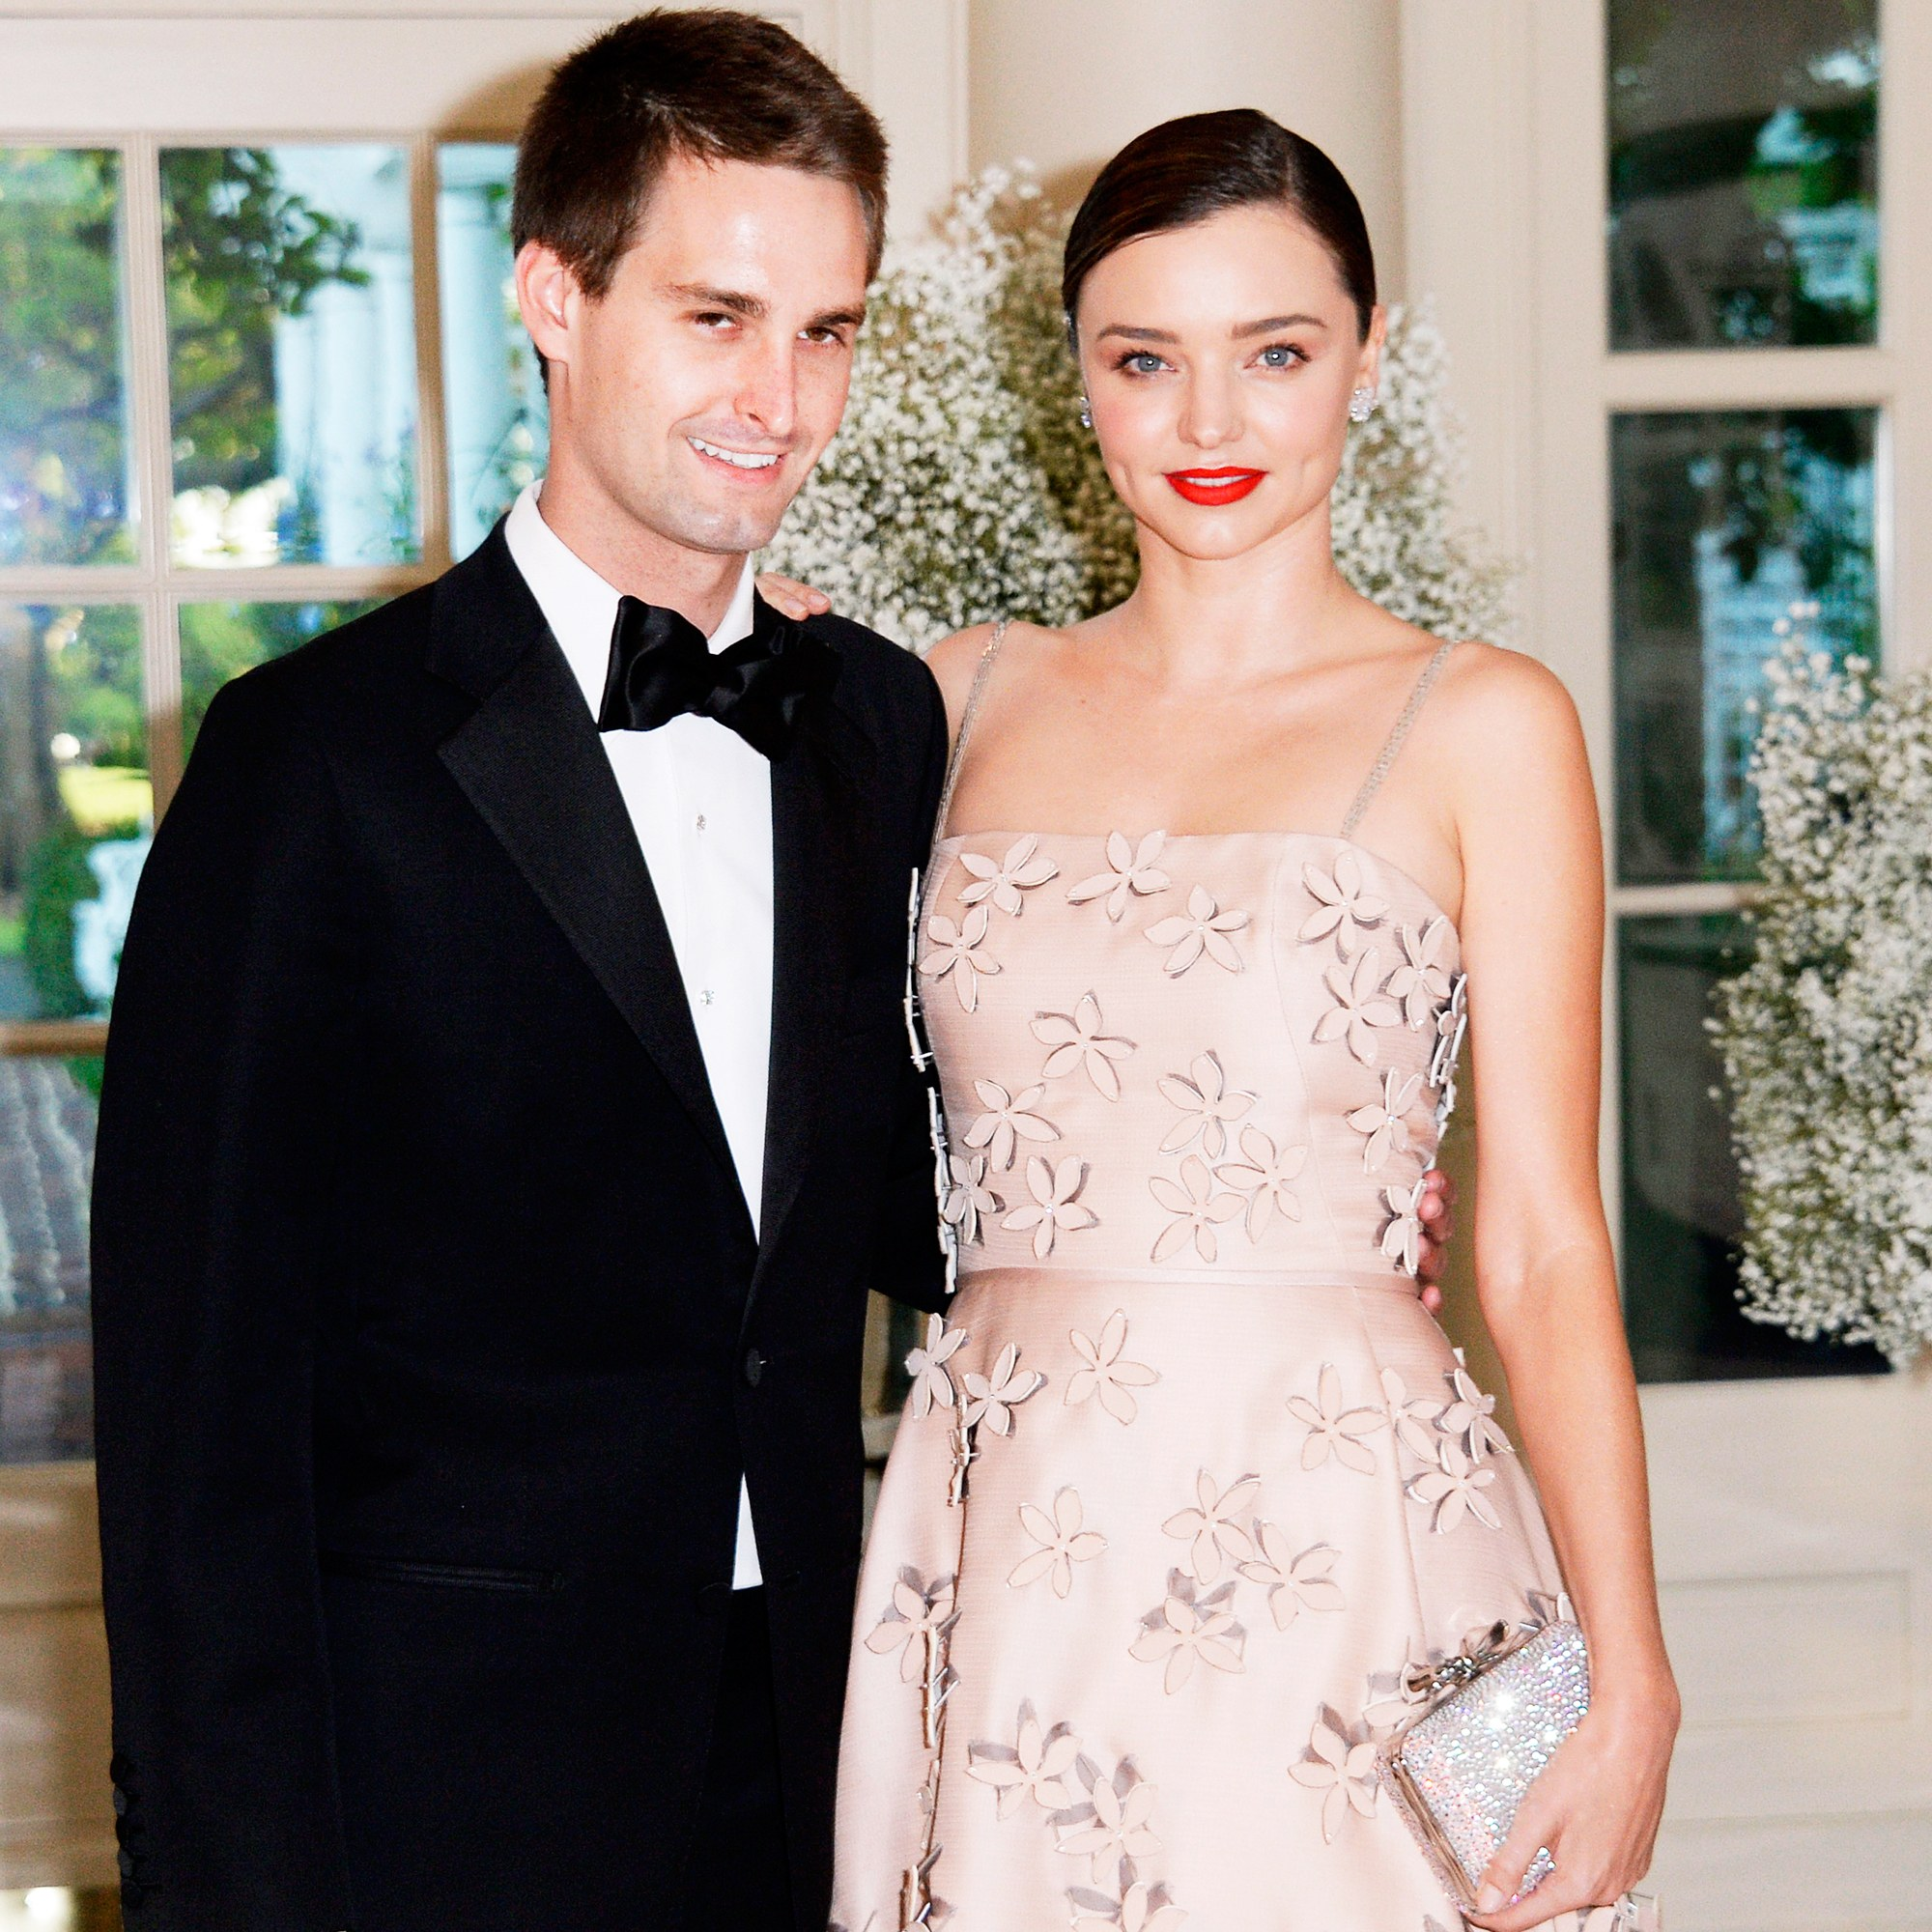 Miranda Kerr Wedding Dress.A Closer Look At Miranda Kerr S Dior Wedding Dress Fashion News